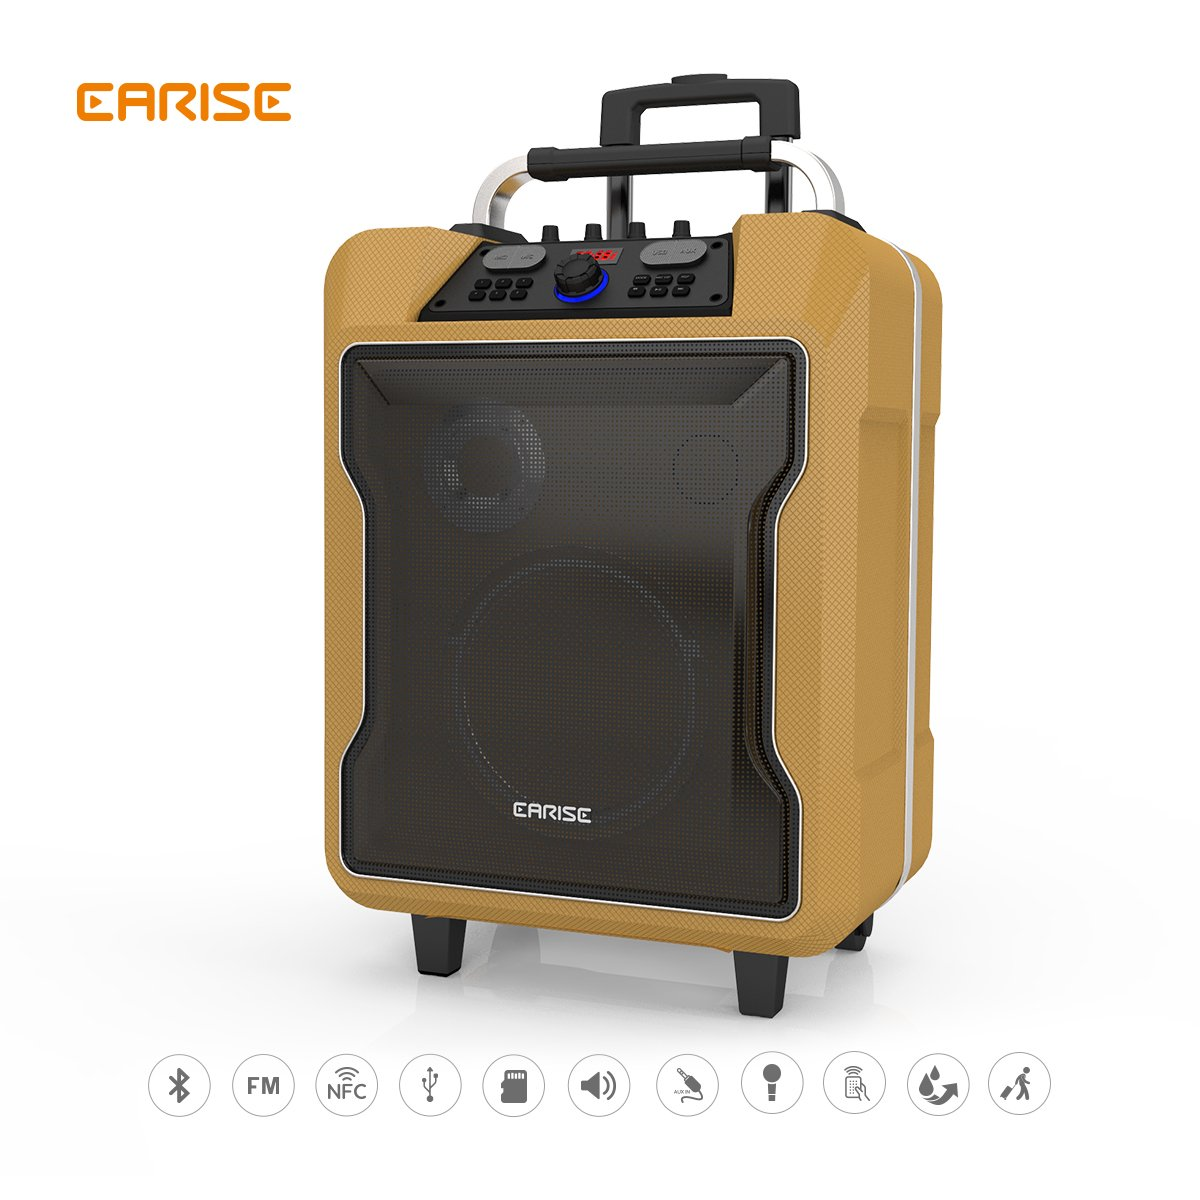 EARISE M60 Audio PA System, Bluetooth Loadspeaker, Soft Metal, 10'' Subwoofer, Wireless Microphone, Remote Control, Mic/Guitar Jack, Telescoping Handle & Wheels